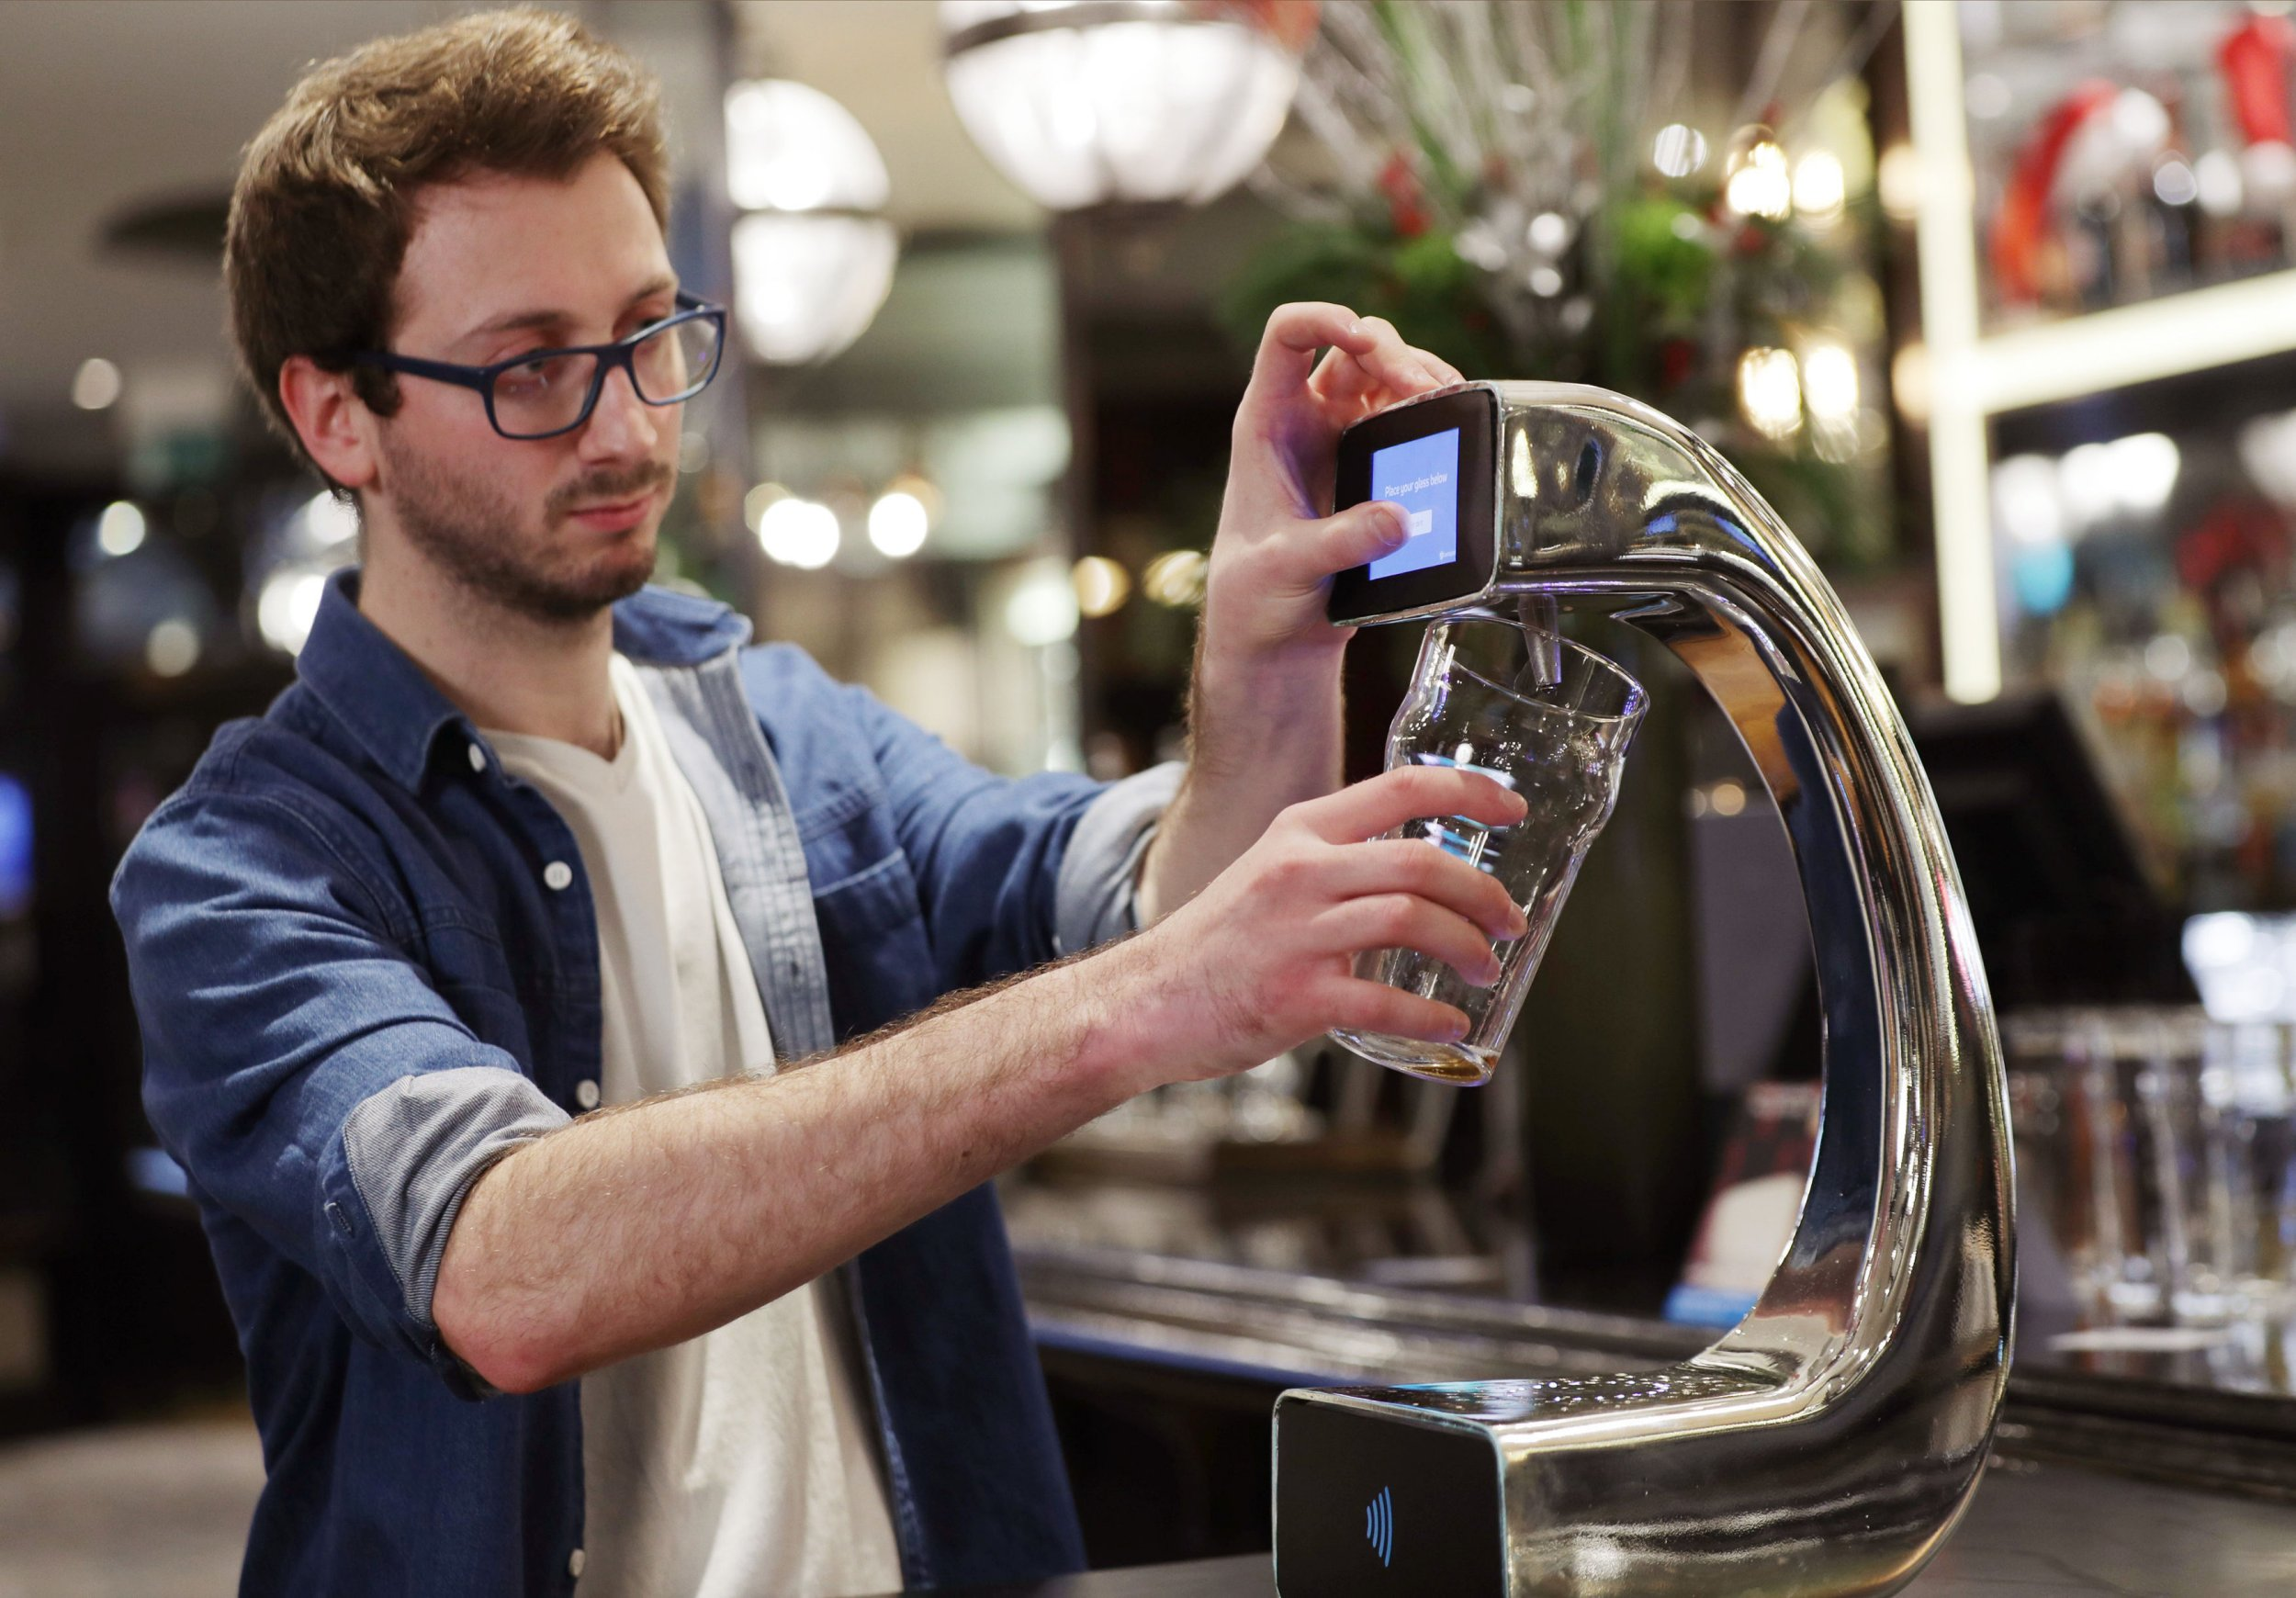 Embargoed to 0001 Friday December 16 James Miller, who helped to develop the worldís first contactless, self-serving beer pump with Barclaycard to help cut bar queues on nights out, takes part in a demonstration at Henryís Cafe and Bar in Piccadilly, London. PRESS ASSOCIATION Photo. Picture date: Monday December 12, 2016. Called Pay @ Pump, the prototype has been designed to help speed up drinks service during busy times of year, including Christmas, by enabling customers to select their drink of choice, pay by tapping their contactless card or device against the base of the pump and then placing a glass on it to begin pouring their drink automatically. See PA story TECHNOLOGY Pump. Photo credit should read: Yui Mok/PA Wire